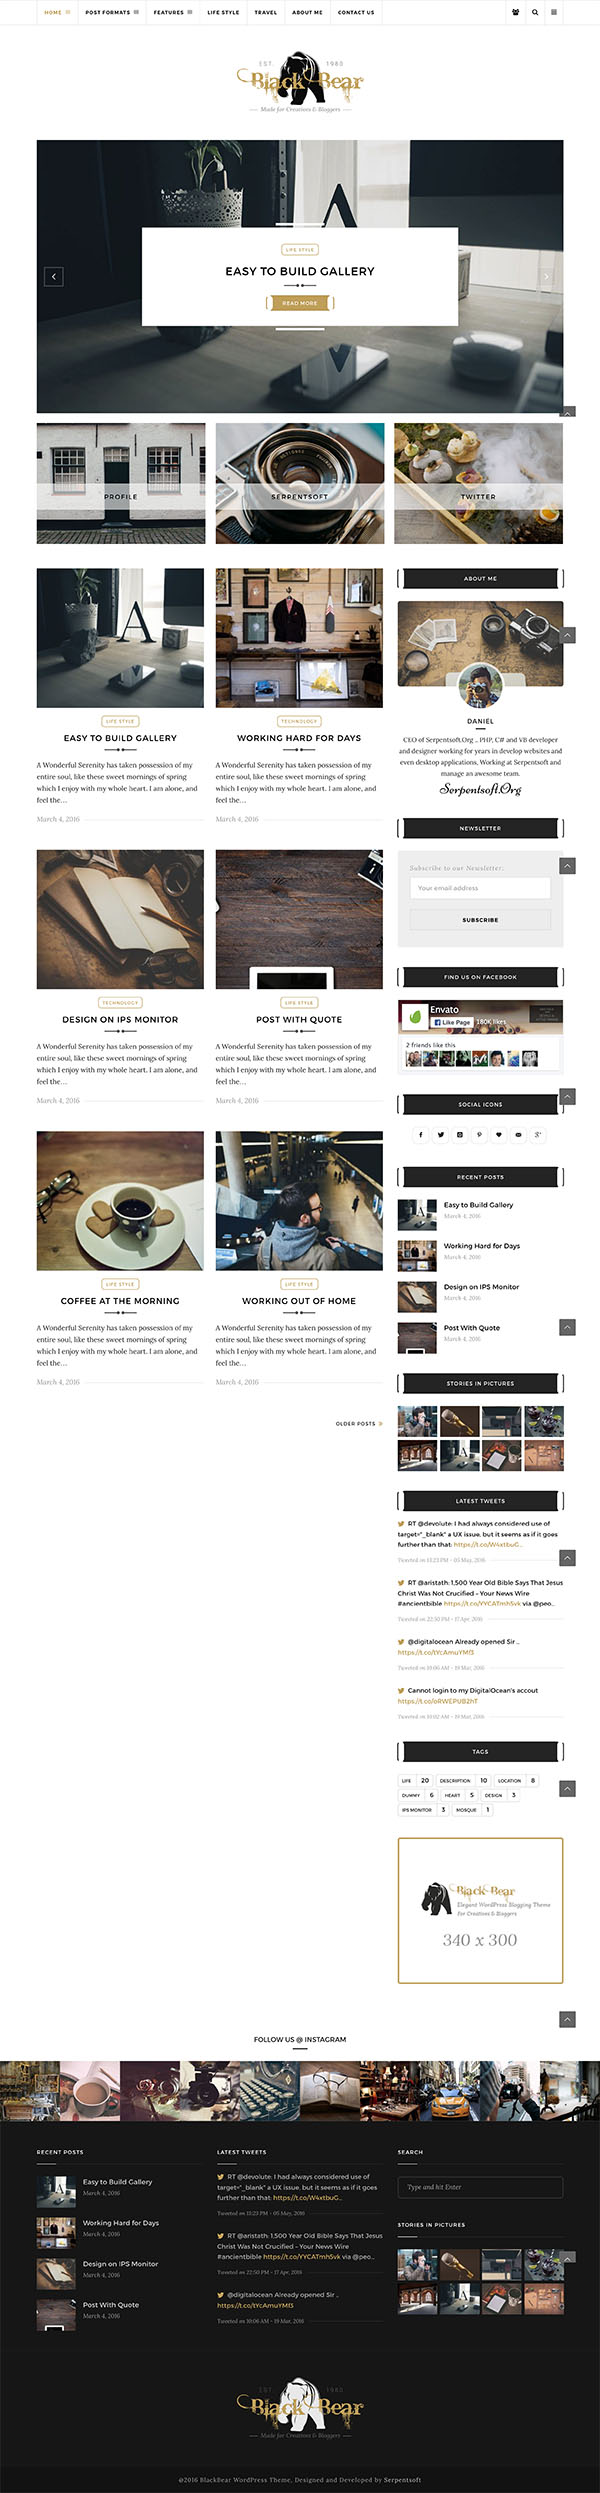 14 Black Bear - Responsive WordPress Blog Theme